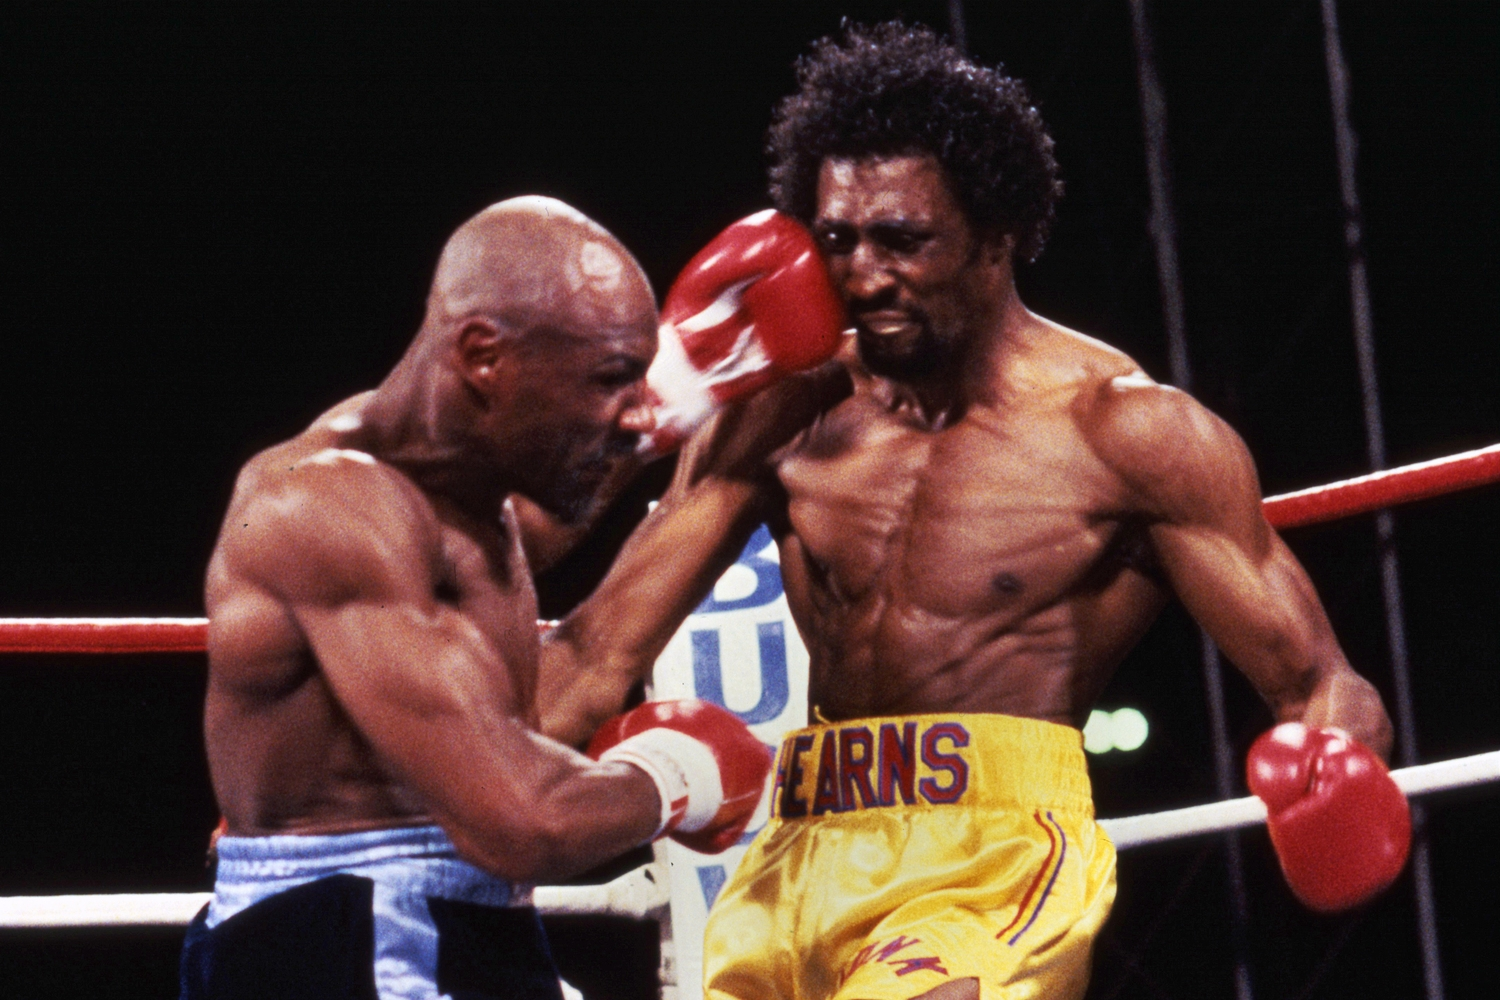 HAGLER VERSUS HEARNS: THE GREATEST FIGHT EVER?